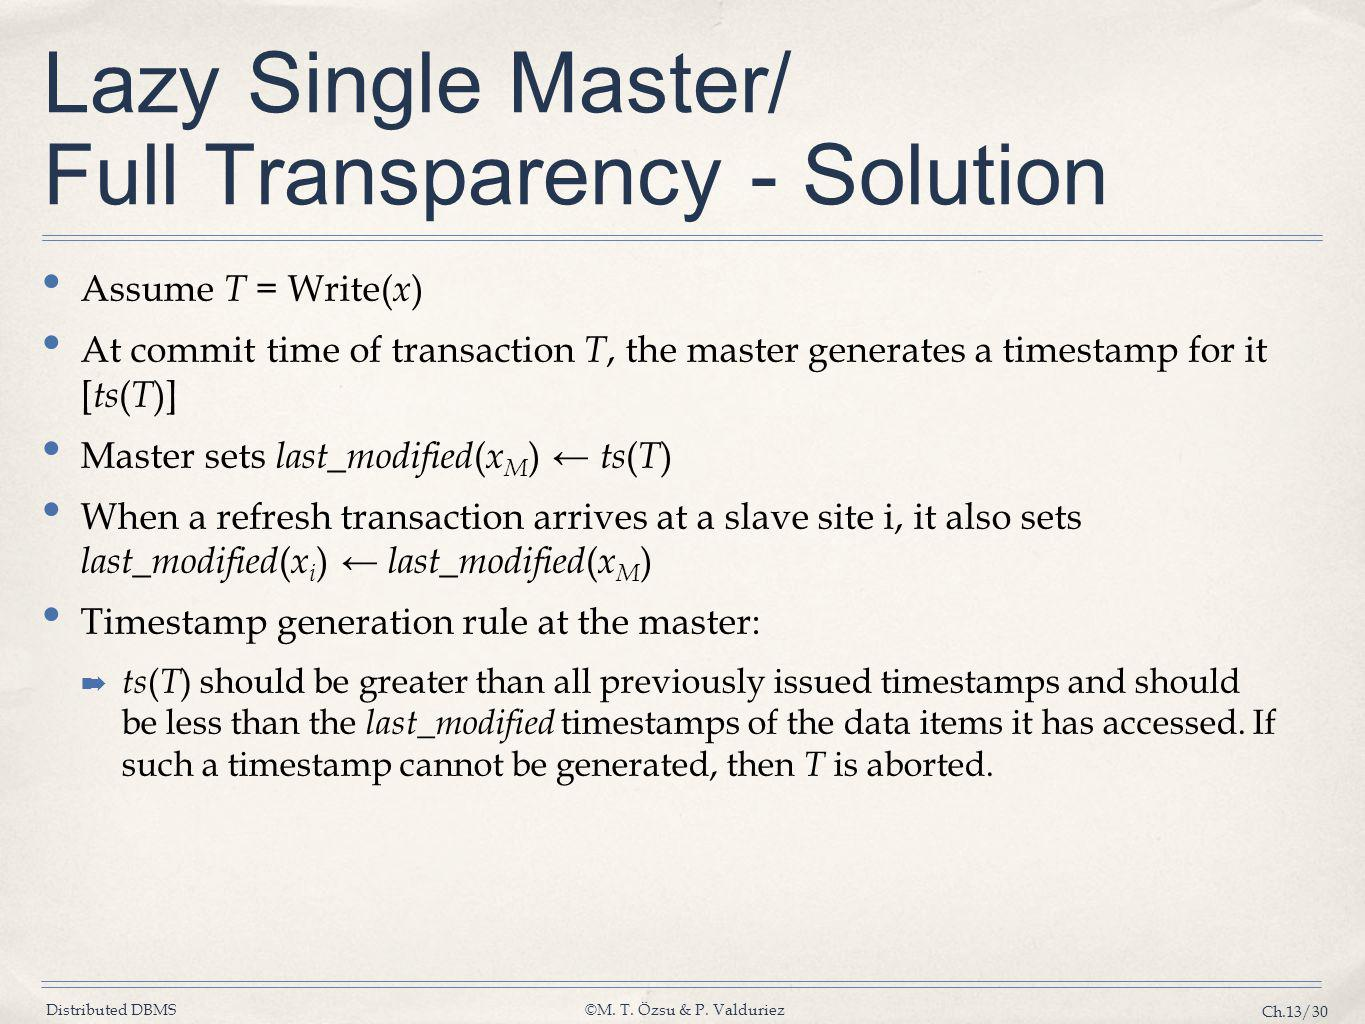 Distributed DBMS©M. T. Özsu & P. Valduriez Ch.13/30 Lazy Single Master/ Full Transparency - Solution Assume T = Write( x ) At commit time of transacti